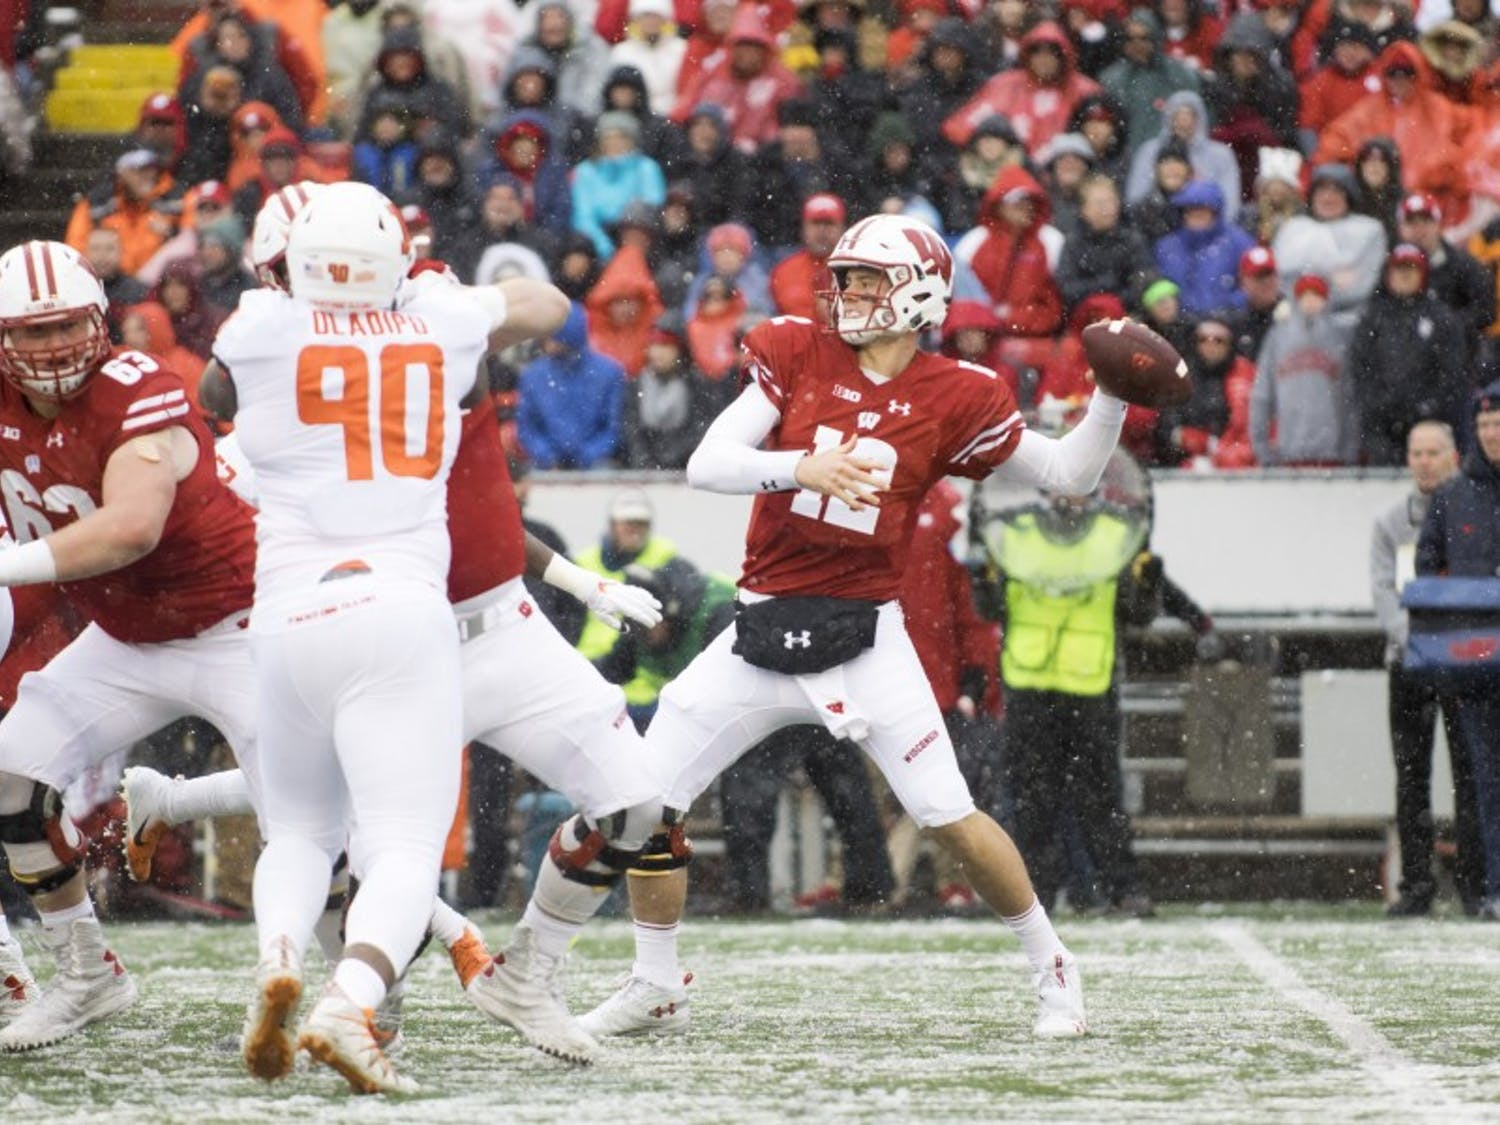 Junior quarterback Alex Hornibrook threw for three touchdowns in Wisconsin's 49-20 win against Illinois on Homecoming.